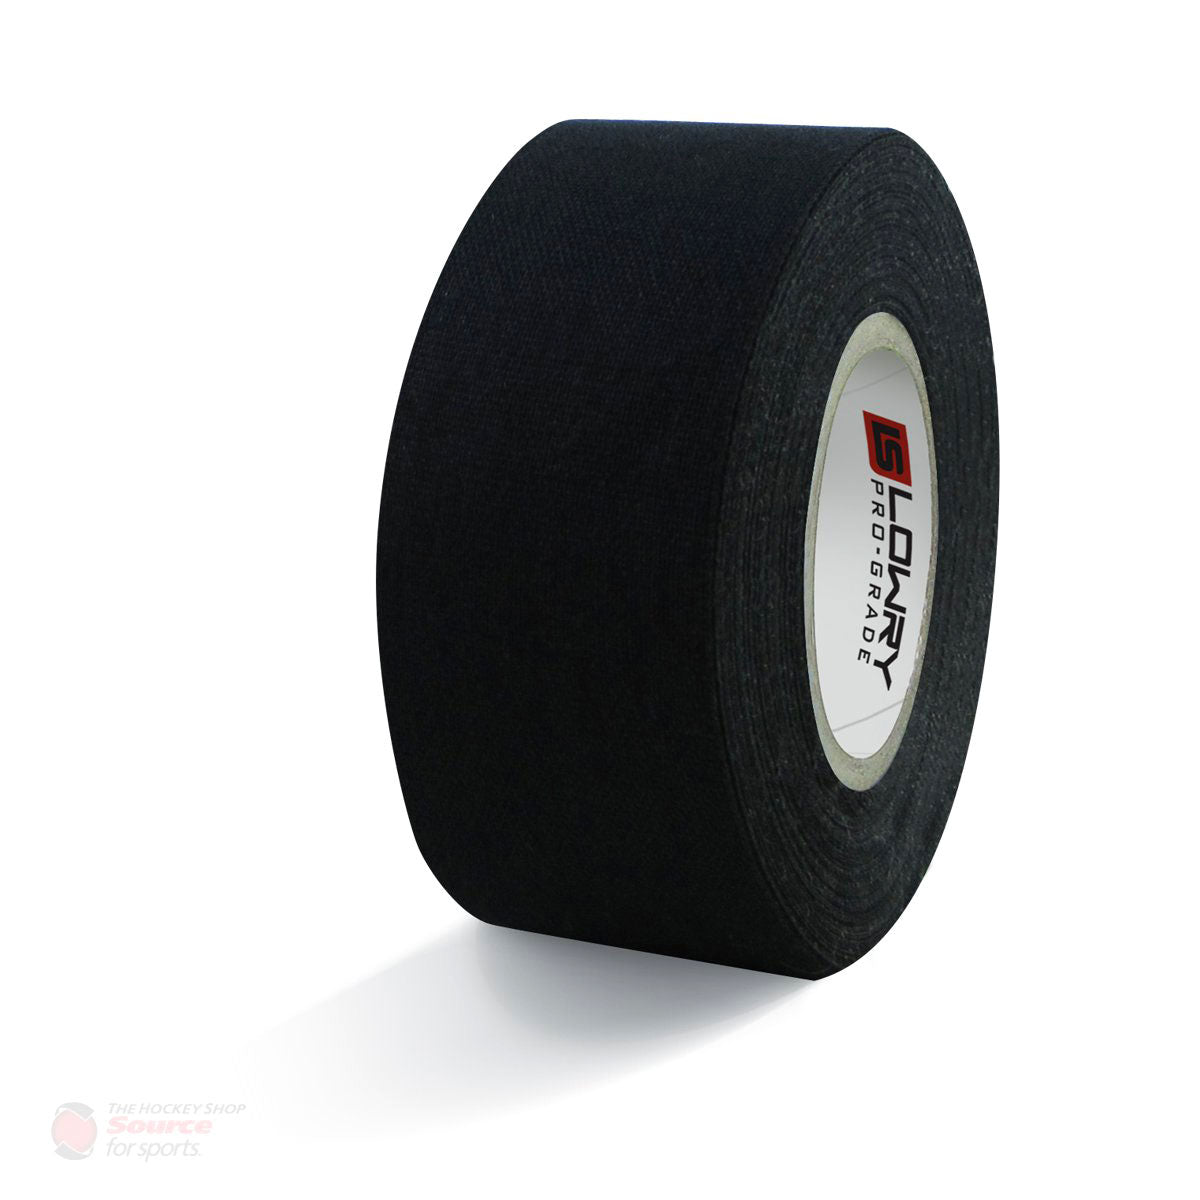 Lowry Sports Pro-Grade Black Hockey Stick Tape - Small Roll